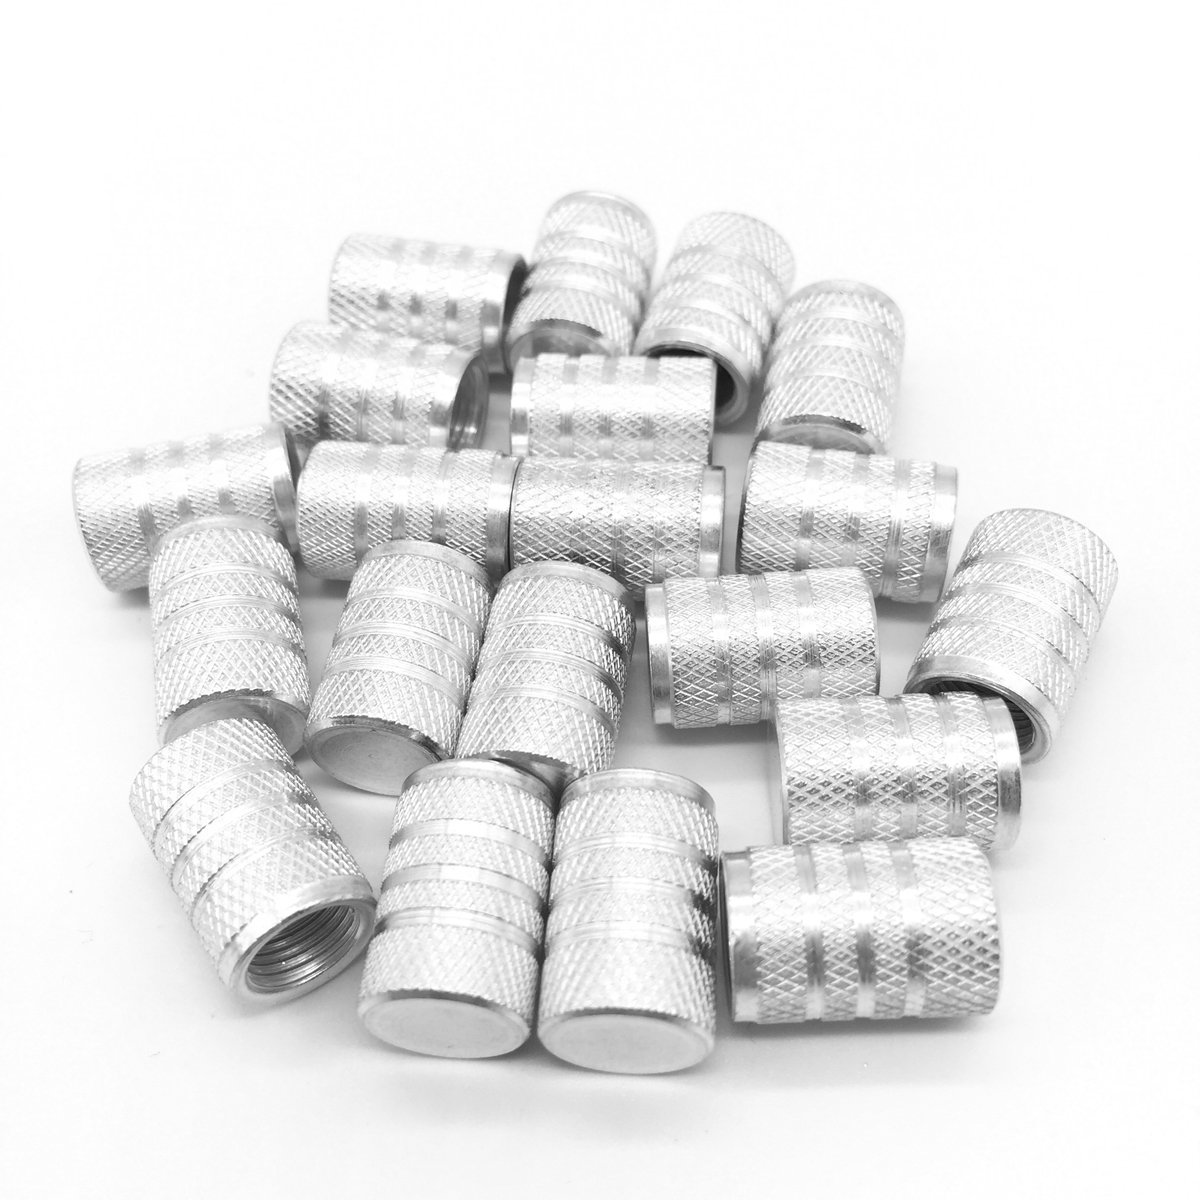 Lantee 20 Pcs Silver Tire Valve Stem Caps for Cars - Aluminium Pressure Covers Fit for BMW, Chevy, Honda, Toyota, Jeep, Ford, Dodge, Mazda, Chevrolet, Subaru, Nissan, GMC, Acura, Mercedes Benz